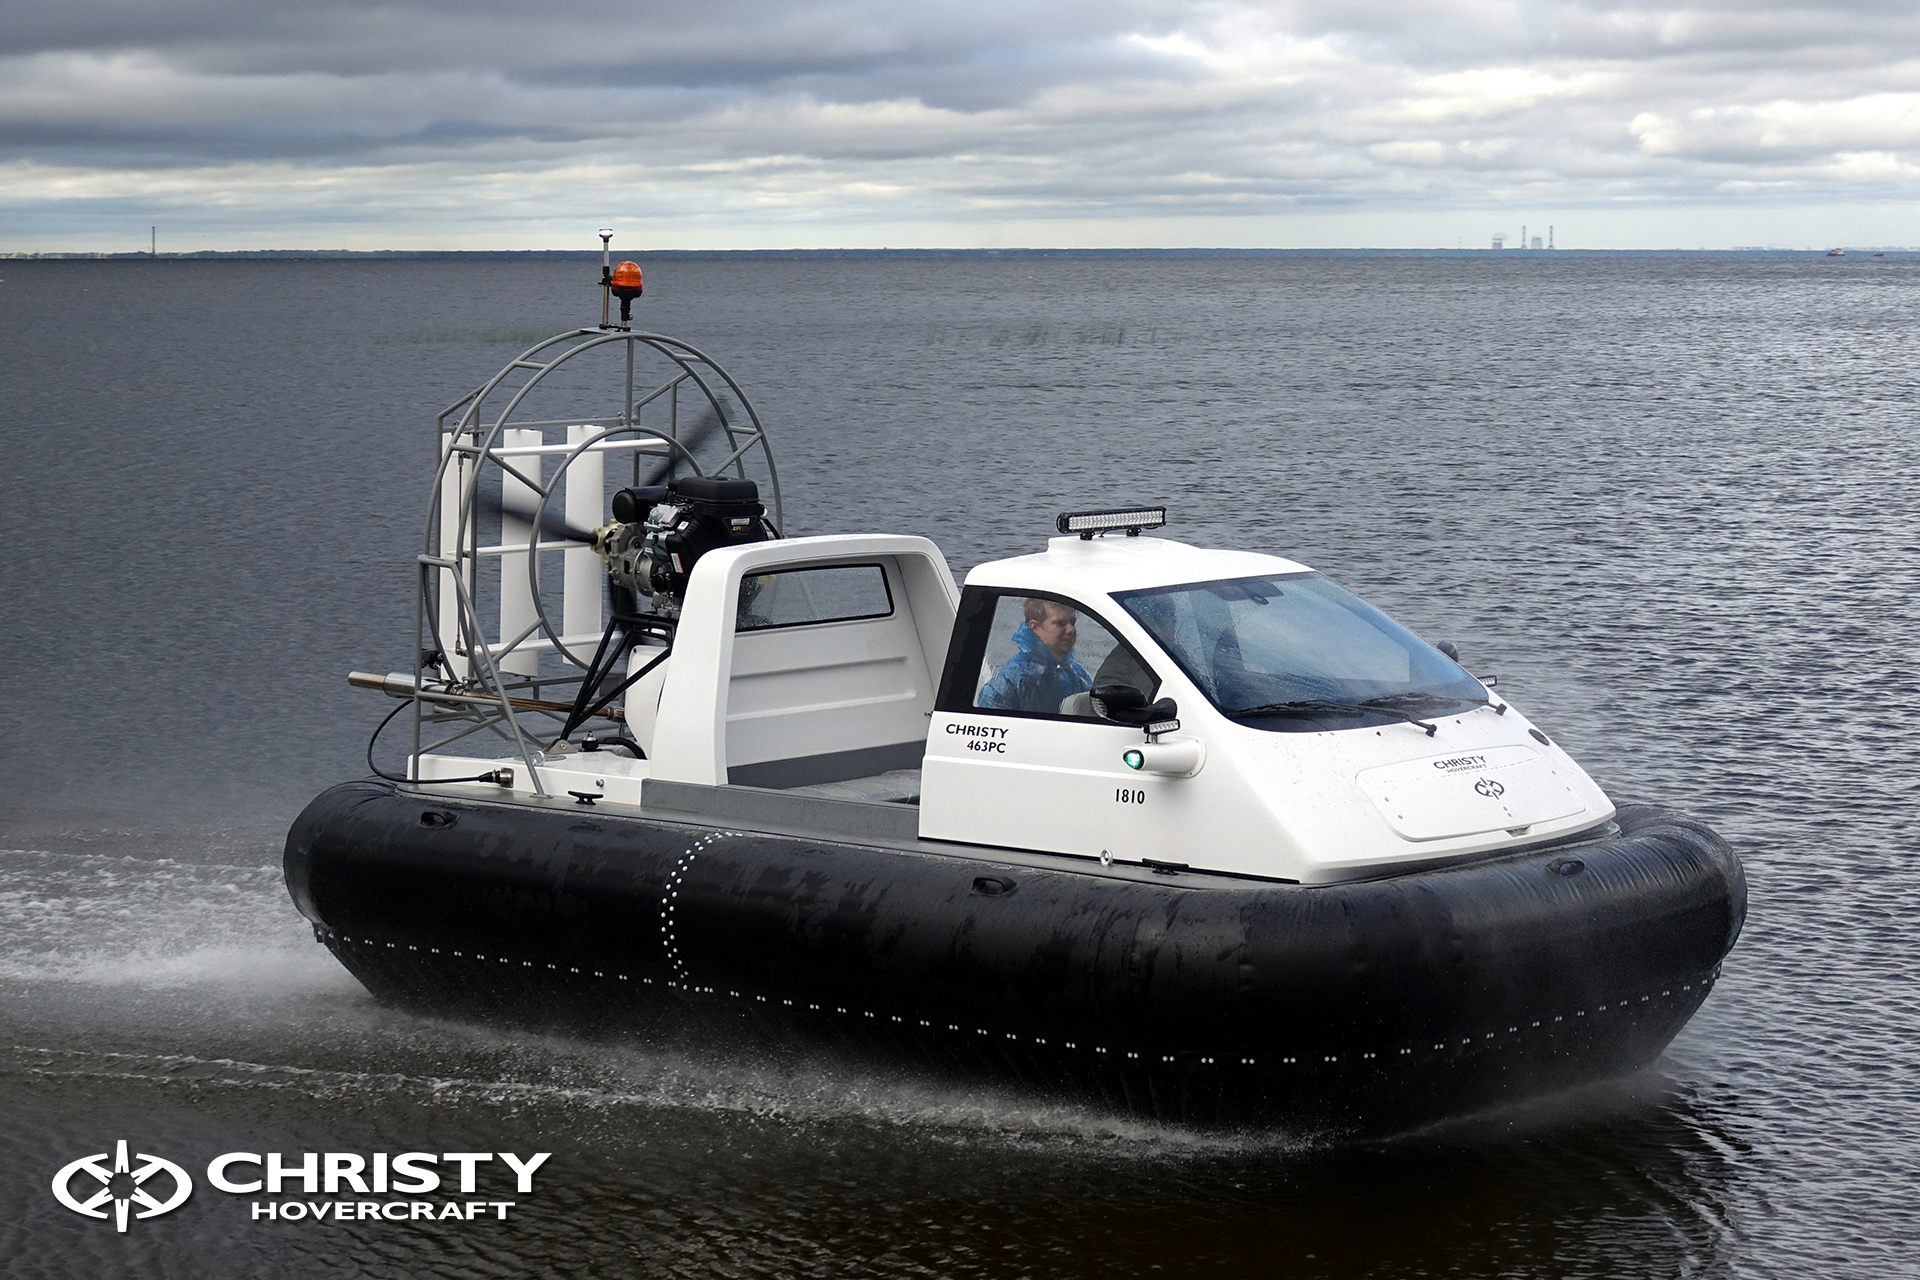 Hovercraft Christy 463 PC in Storm 290618 18.jpg | фото №17